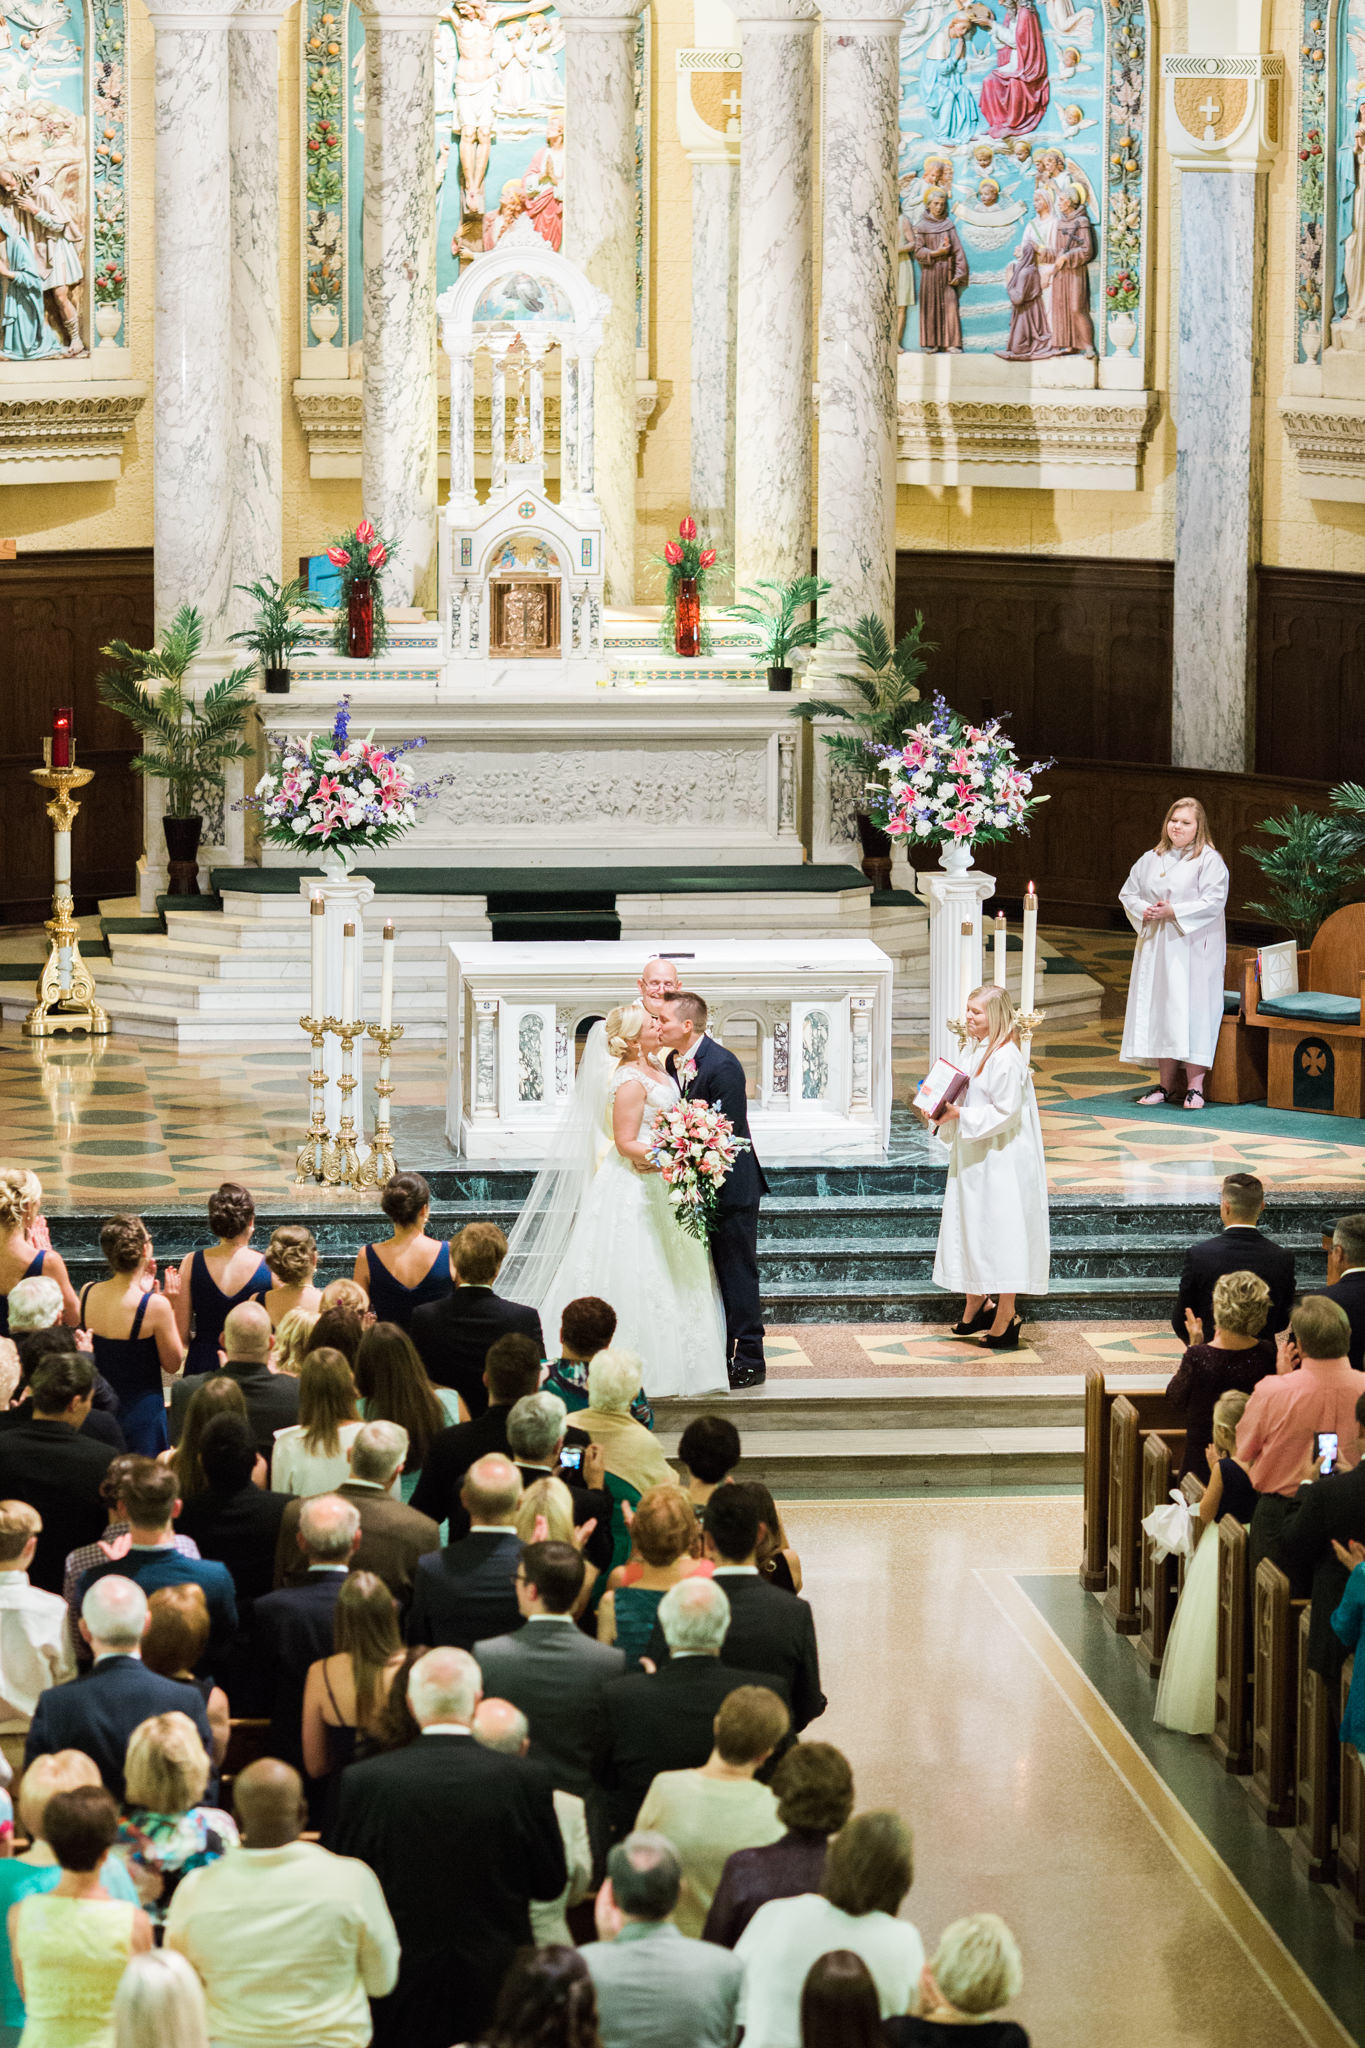 Bride and Groom first kiss from Balcony at St. Agnes Catholic Church in Louisville Ky.